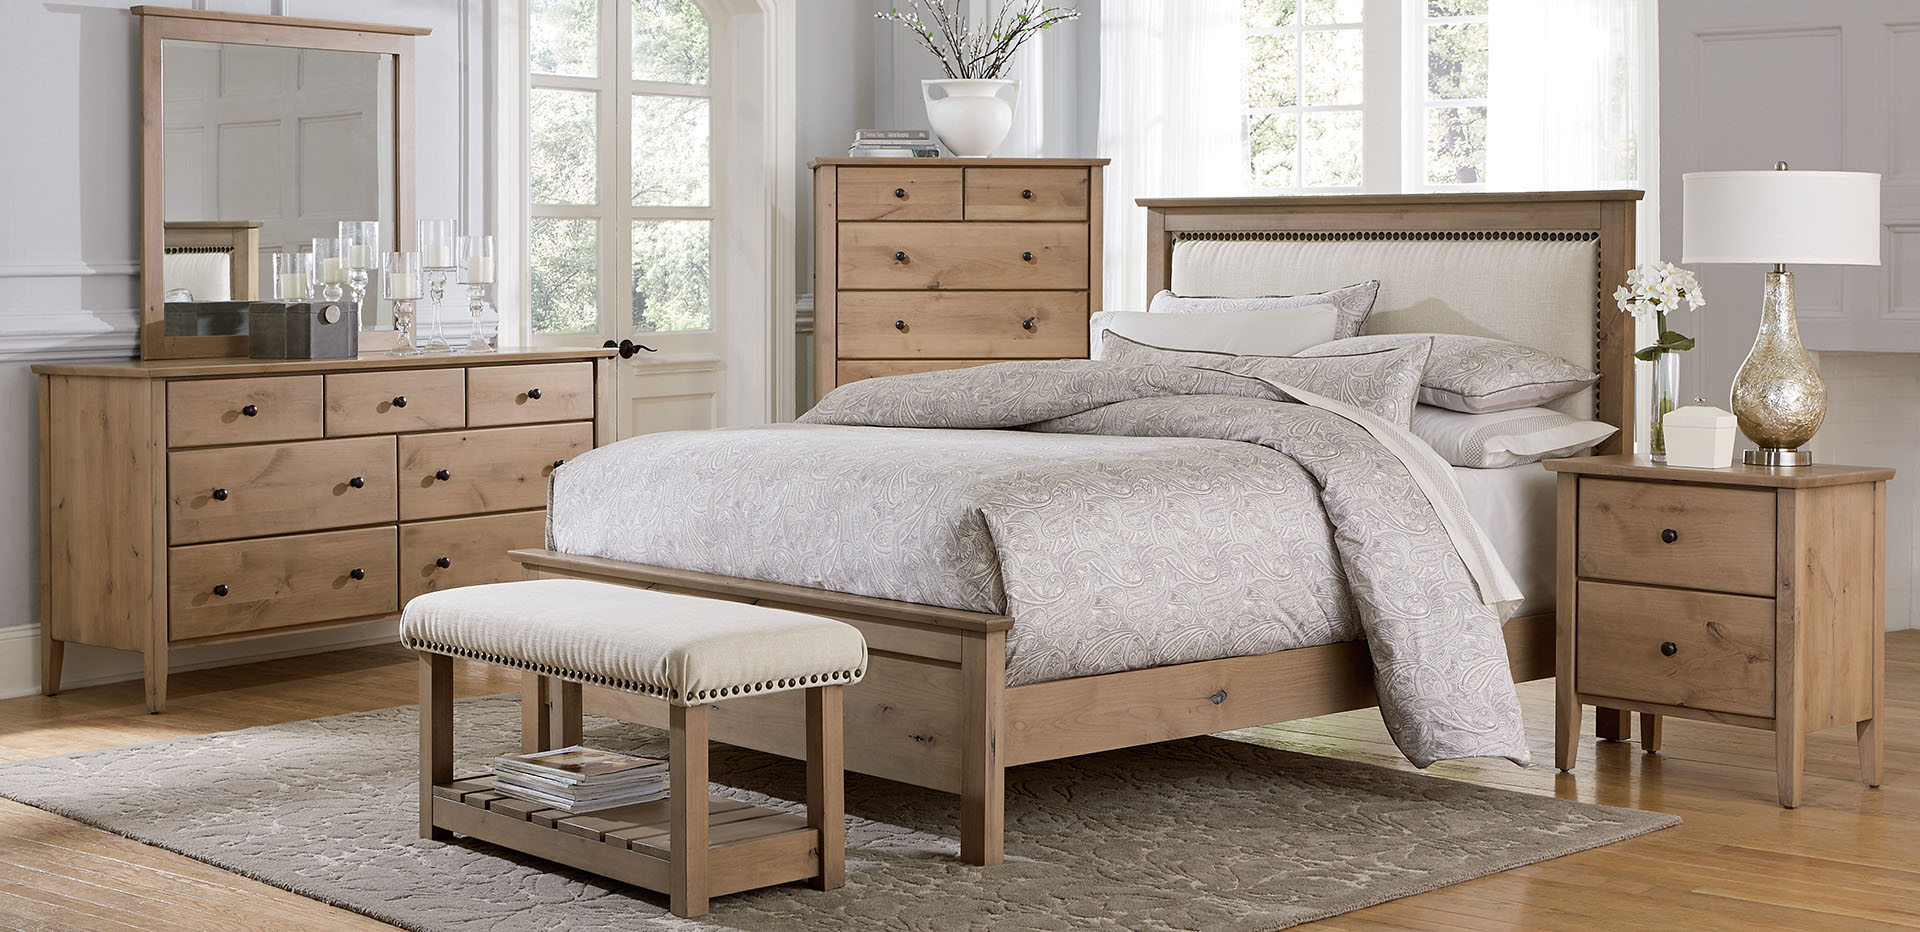 Custom built Medina Bedroom Set